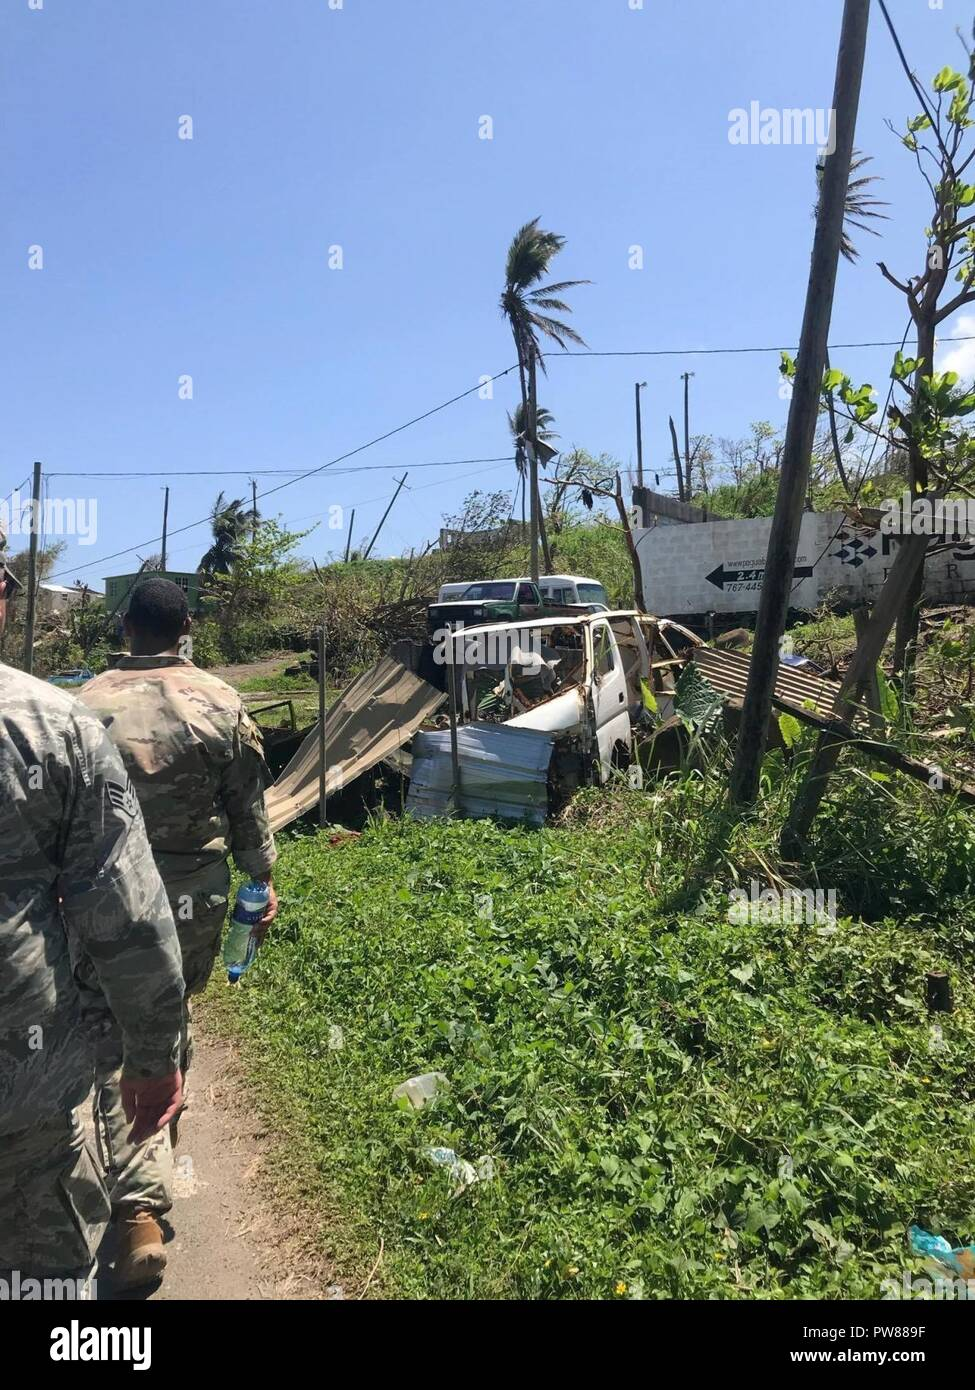 U.S. service members survey damage, Oct. 9, 2017 on the Caribbean island of Dominica. The island was devastated by Hurricane Maria, a Category 5 storm that made landfall Sept. 19, 2017, spurring support from the Joint Base Lewis-McChord community, as well as military installations across the globe. - Stock Image